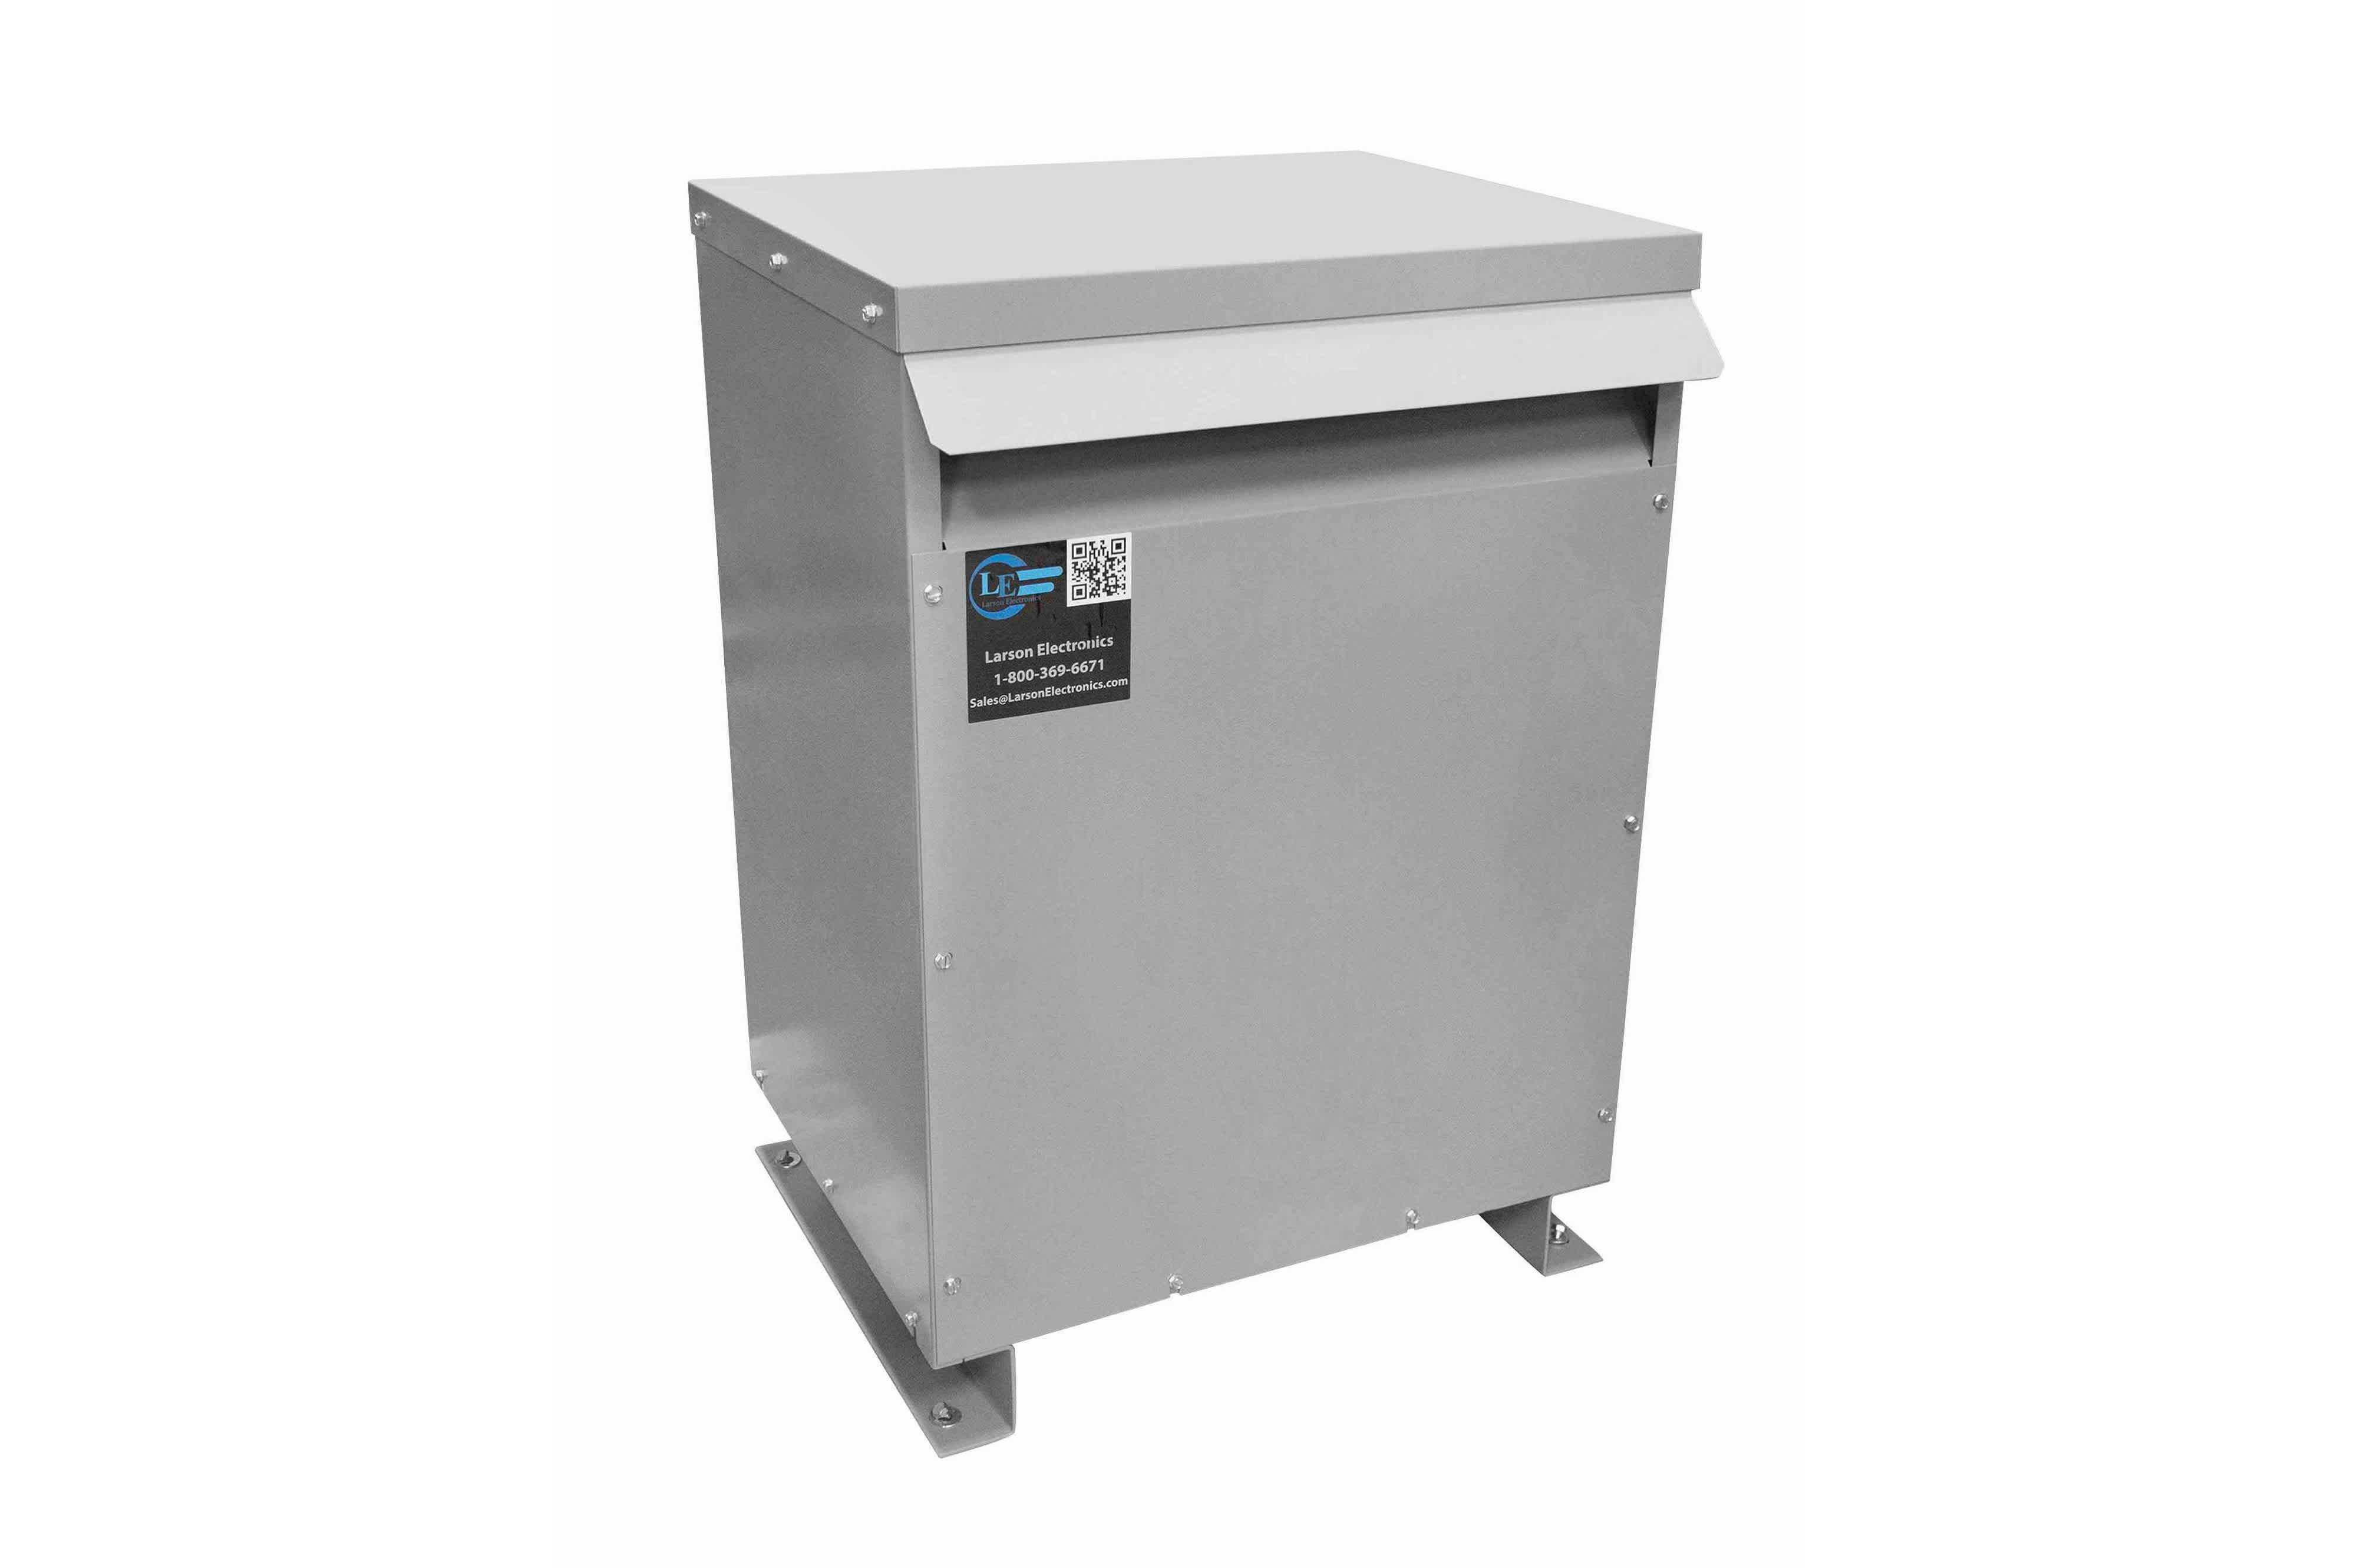 112.5 kVA 3PH Isolation Transformer, 208V Wye Primary, 240V Delta Secondary, N3R, Ventilated, 60 Hz